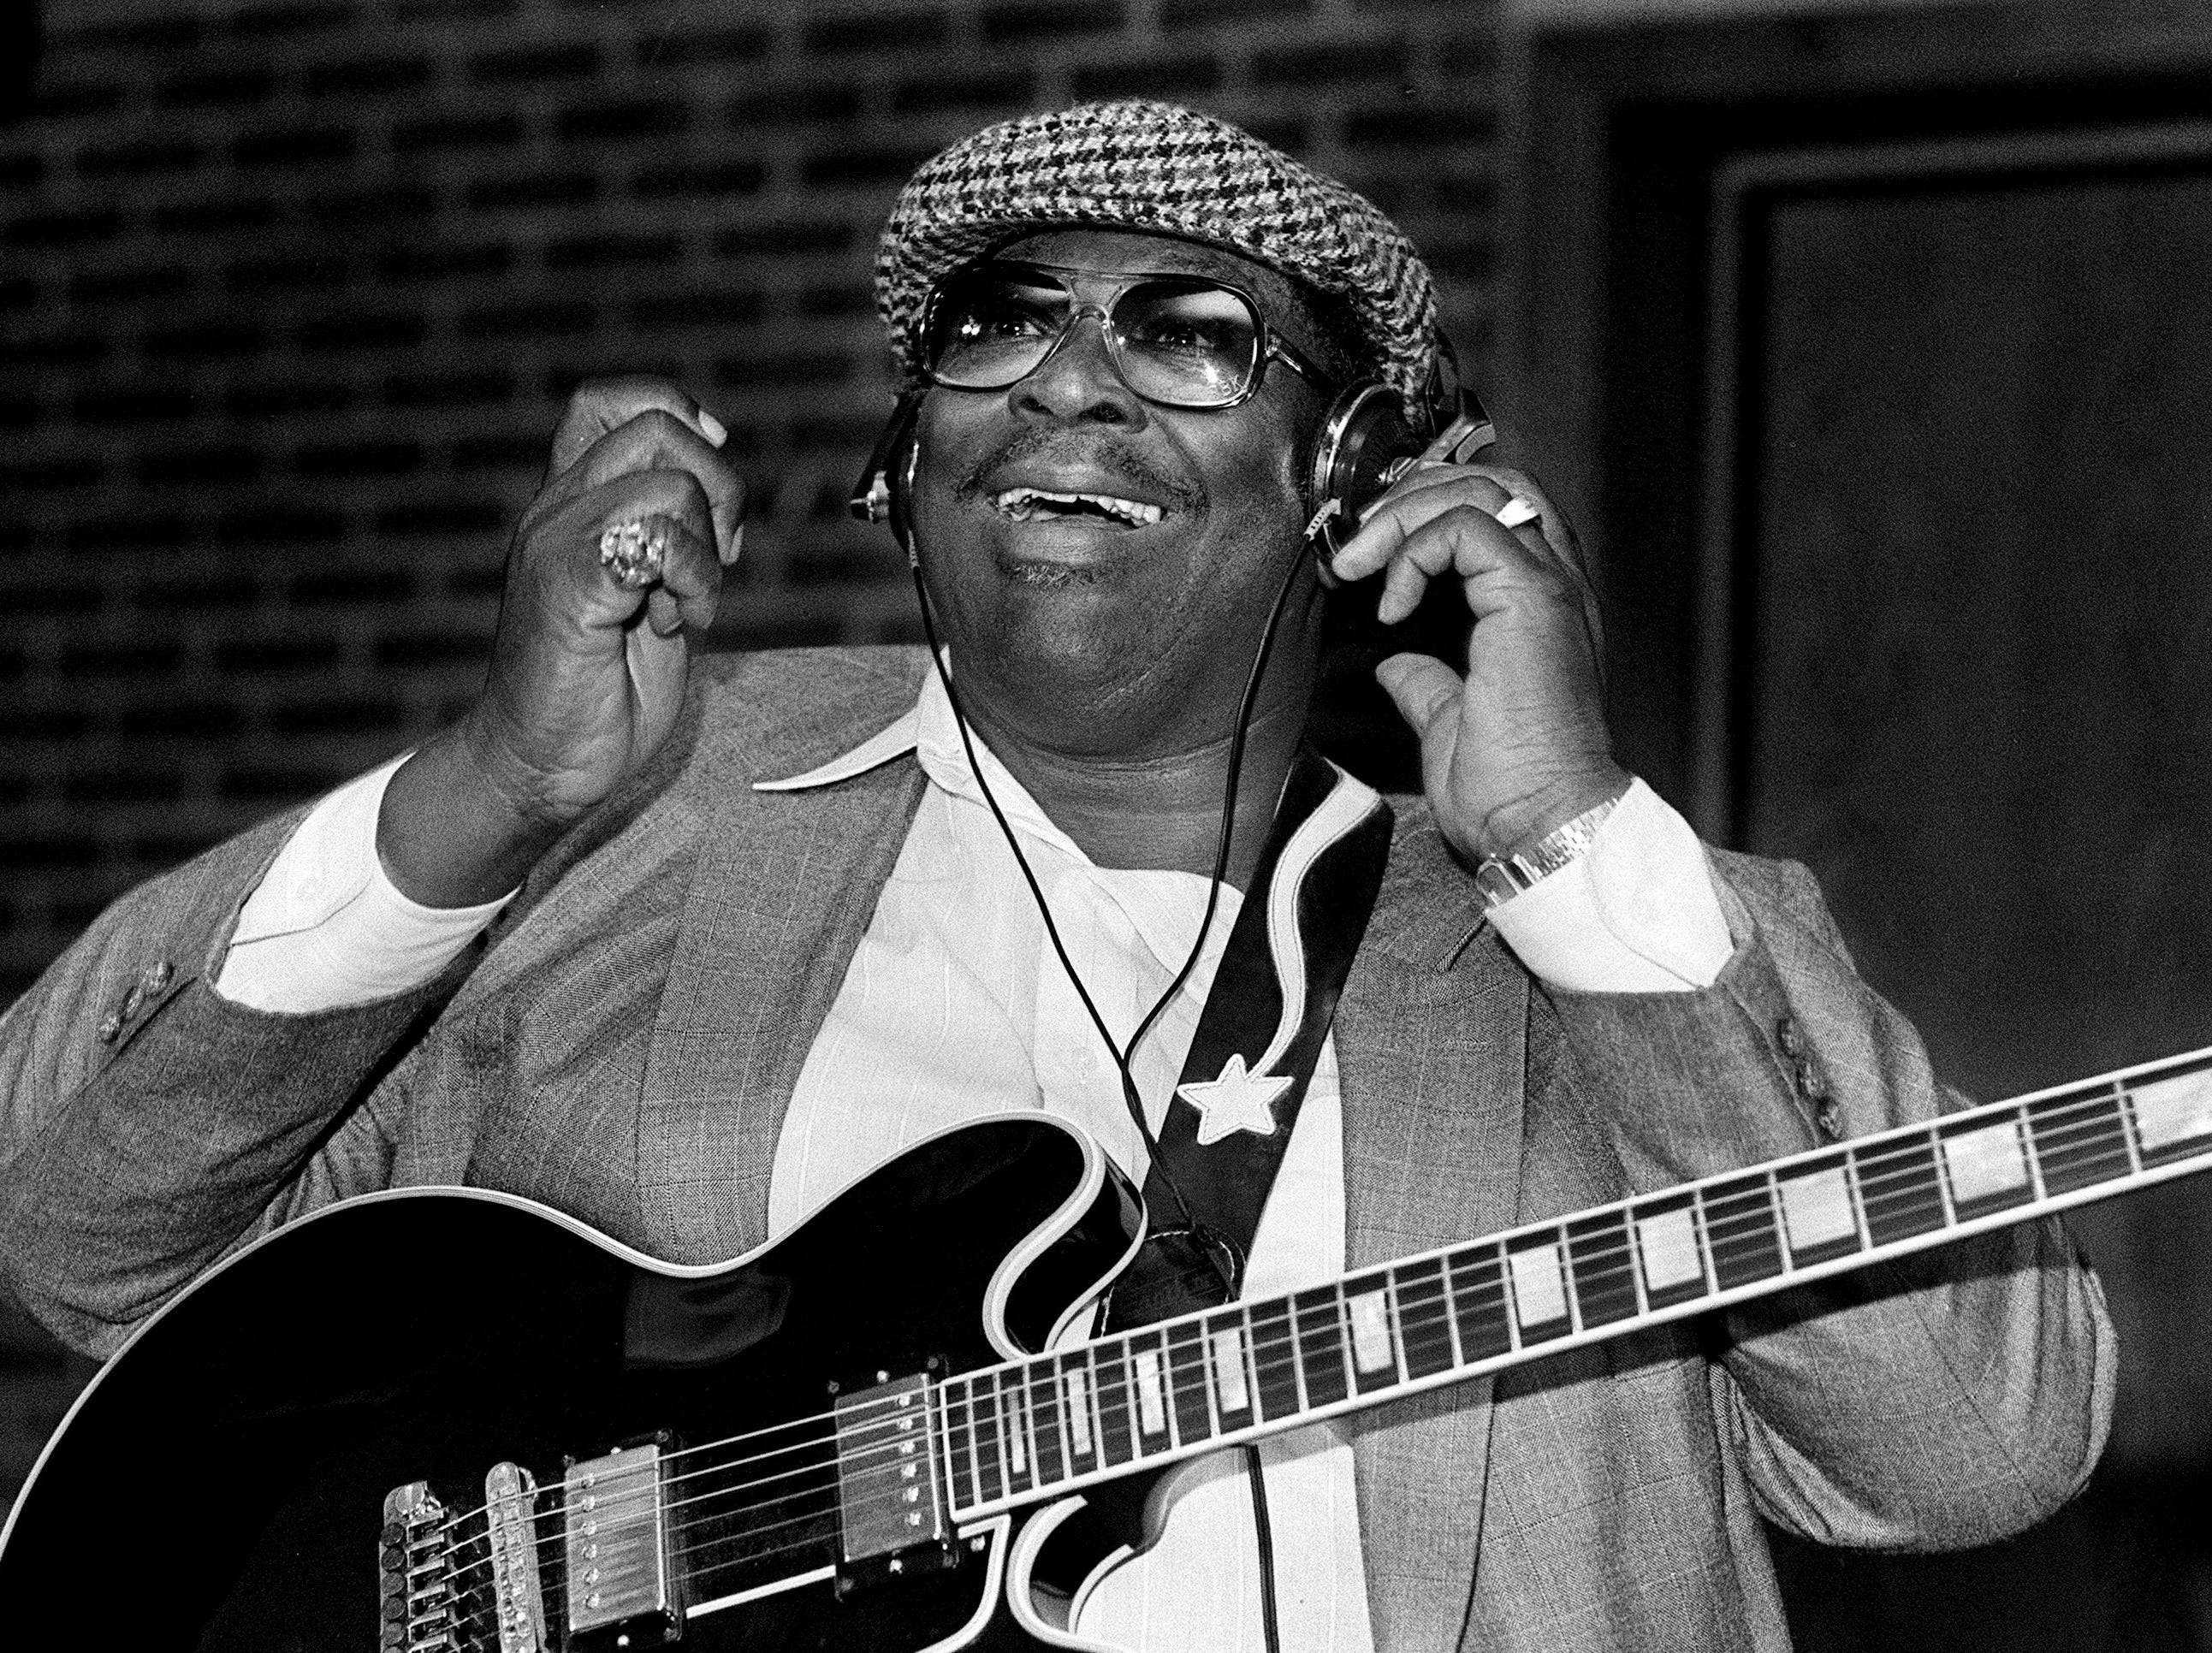 B.B. King reacts to the music while recording a new album at Memphis Sound Productions studios on October 26, 1987.